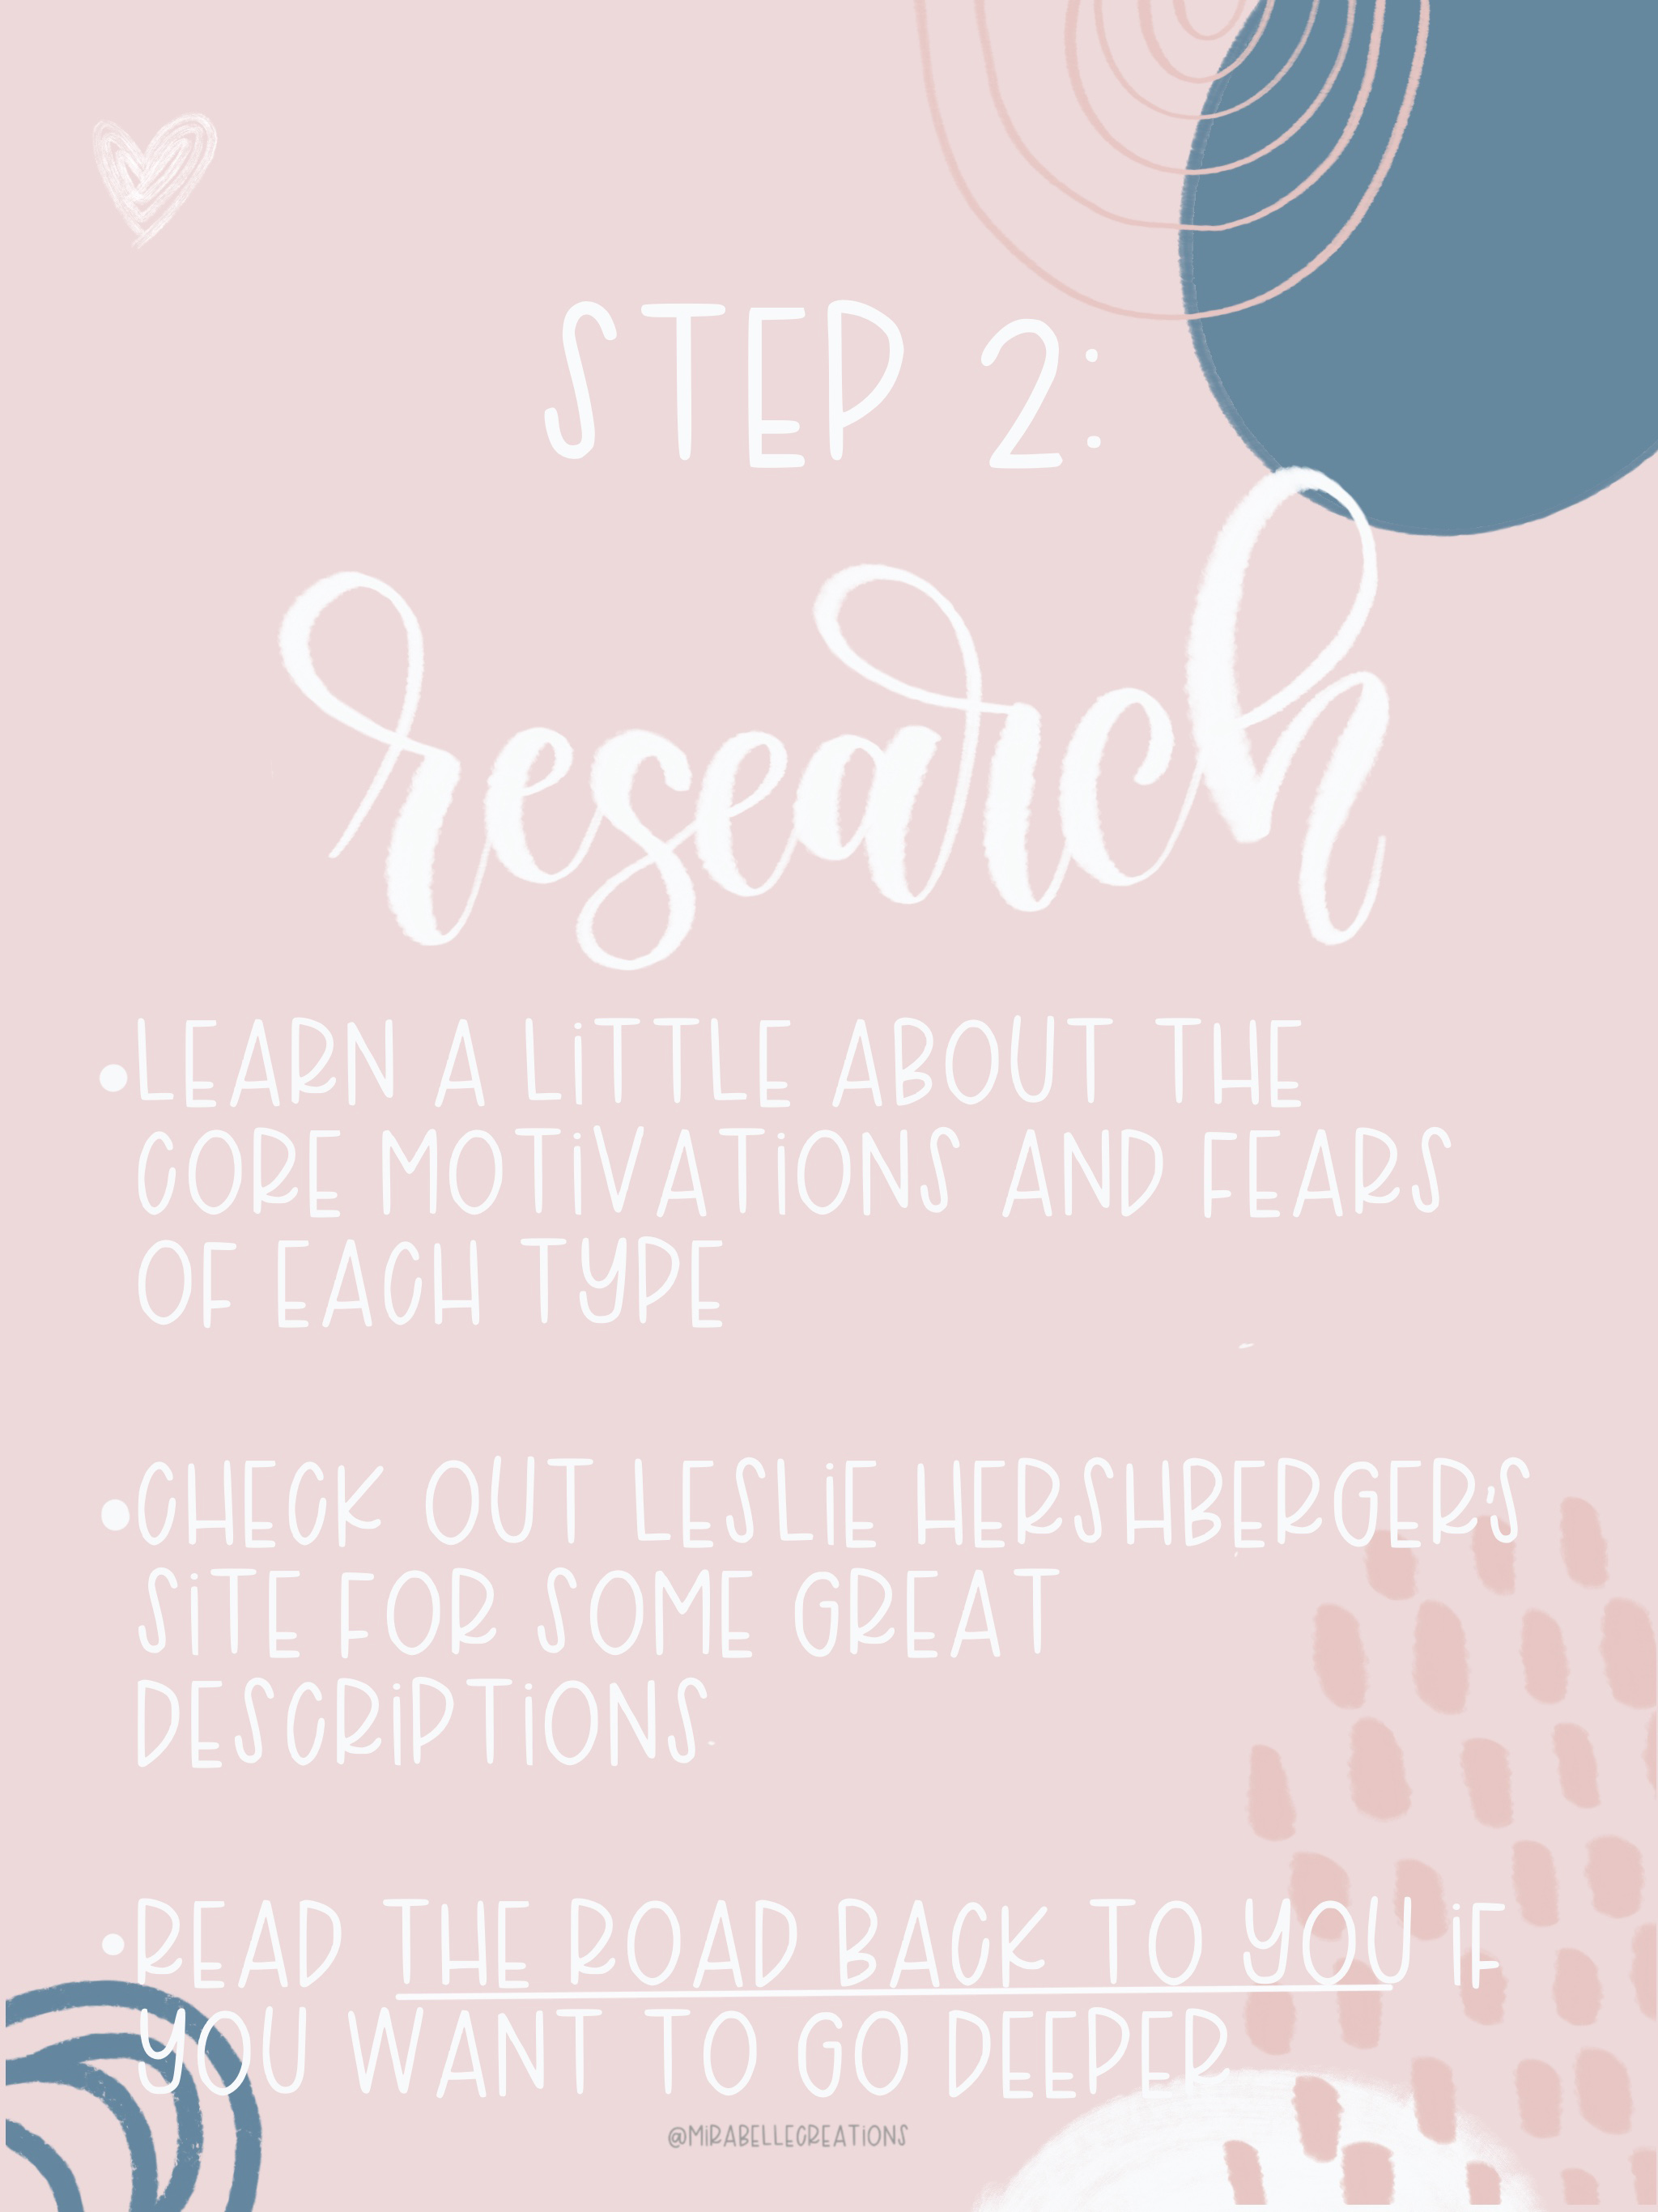 Finding Your Enneagram Type - Step 2: Reserach